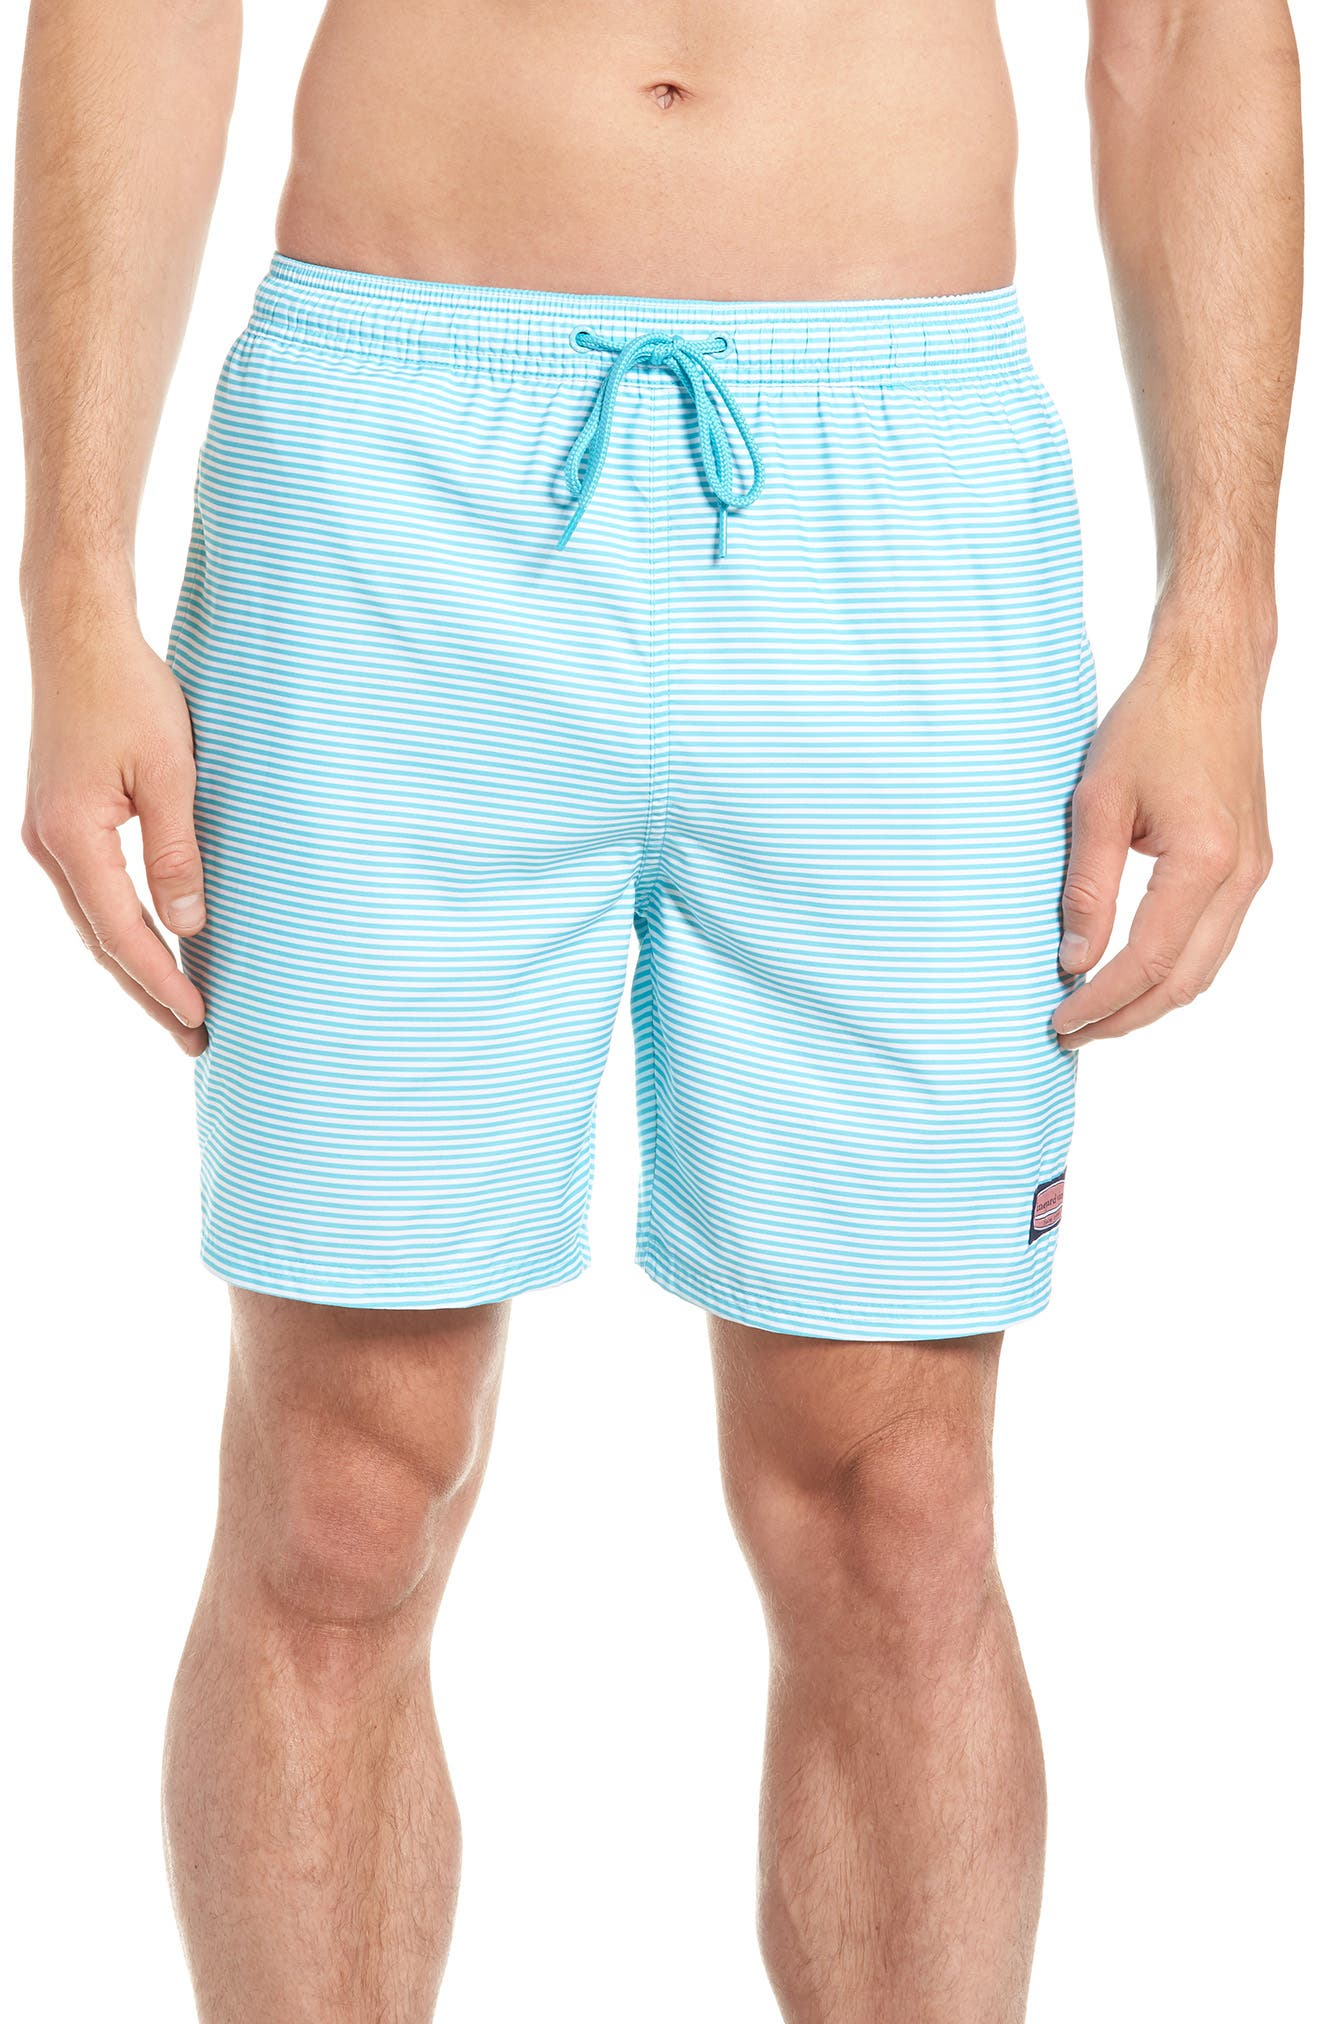 Chappy Stripe Swim Trunks,                             Main thumbnail 1, color,                             Turquoise